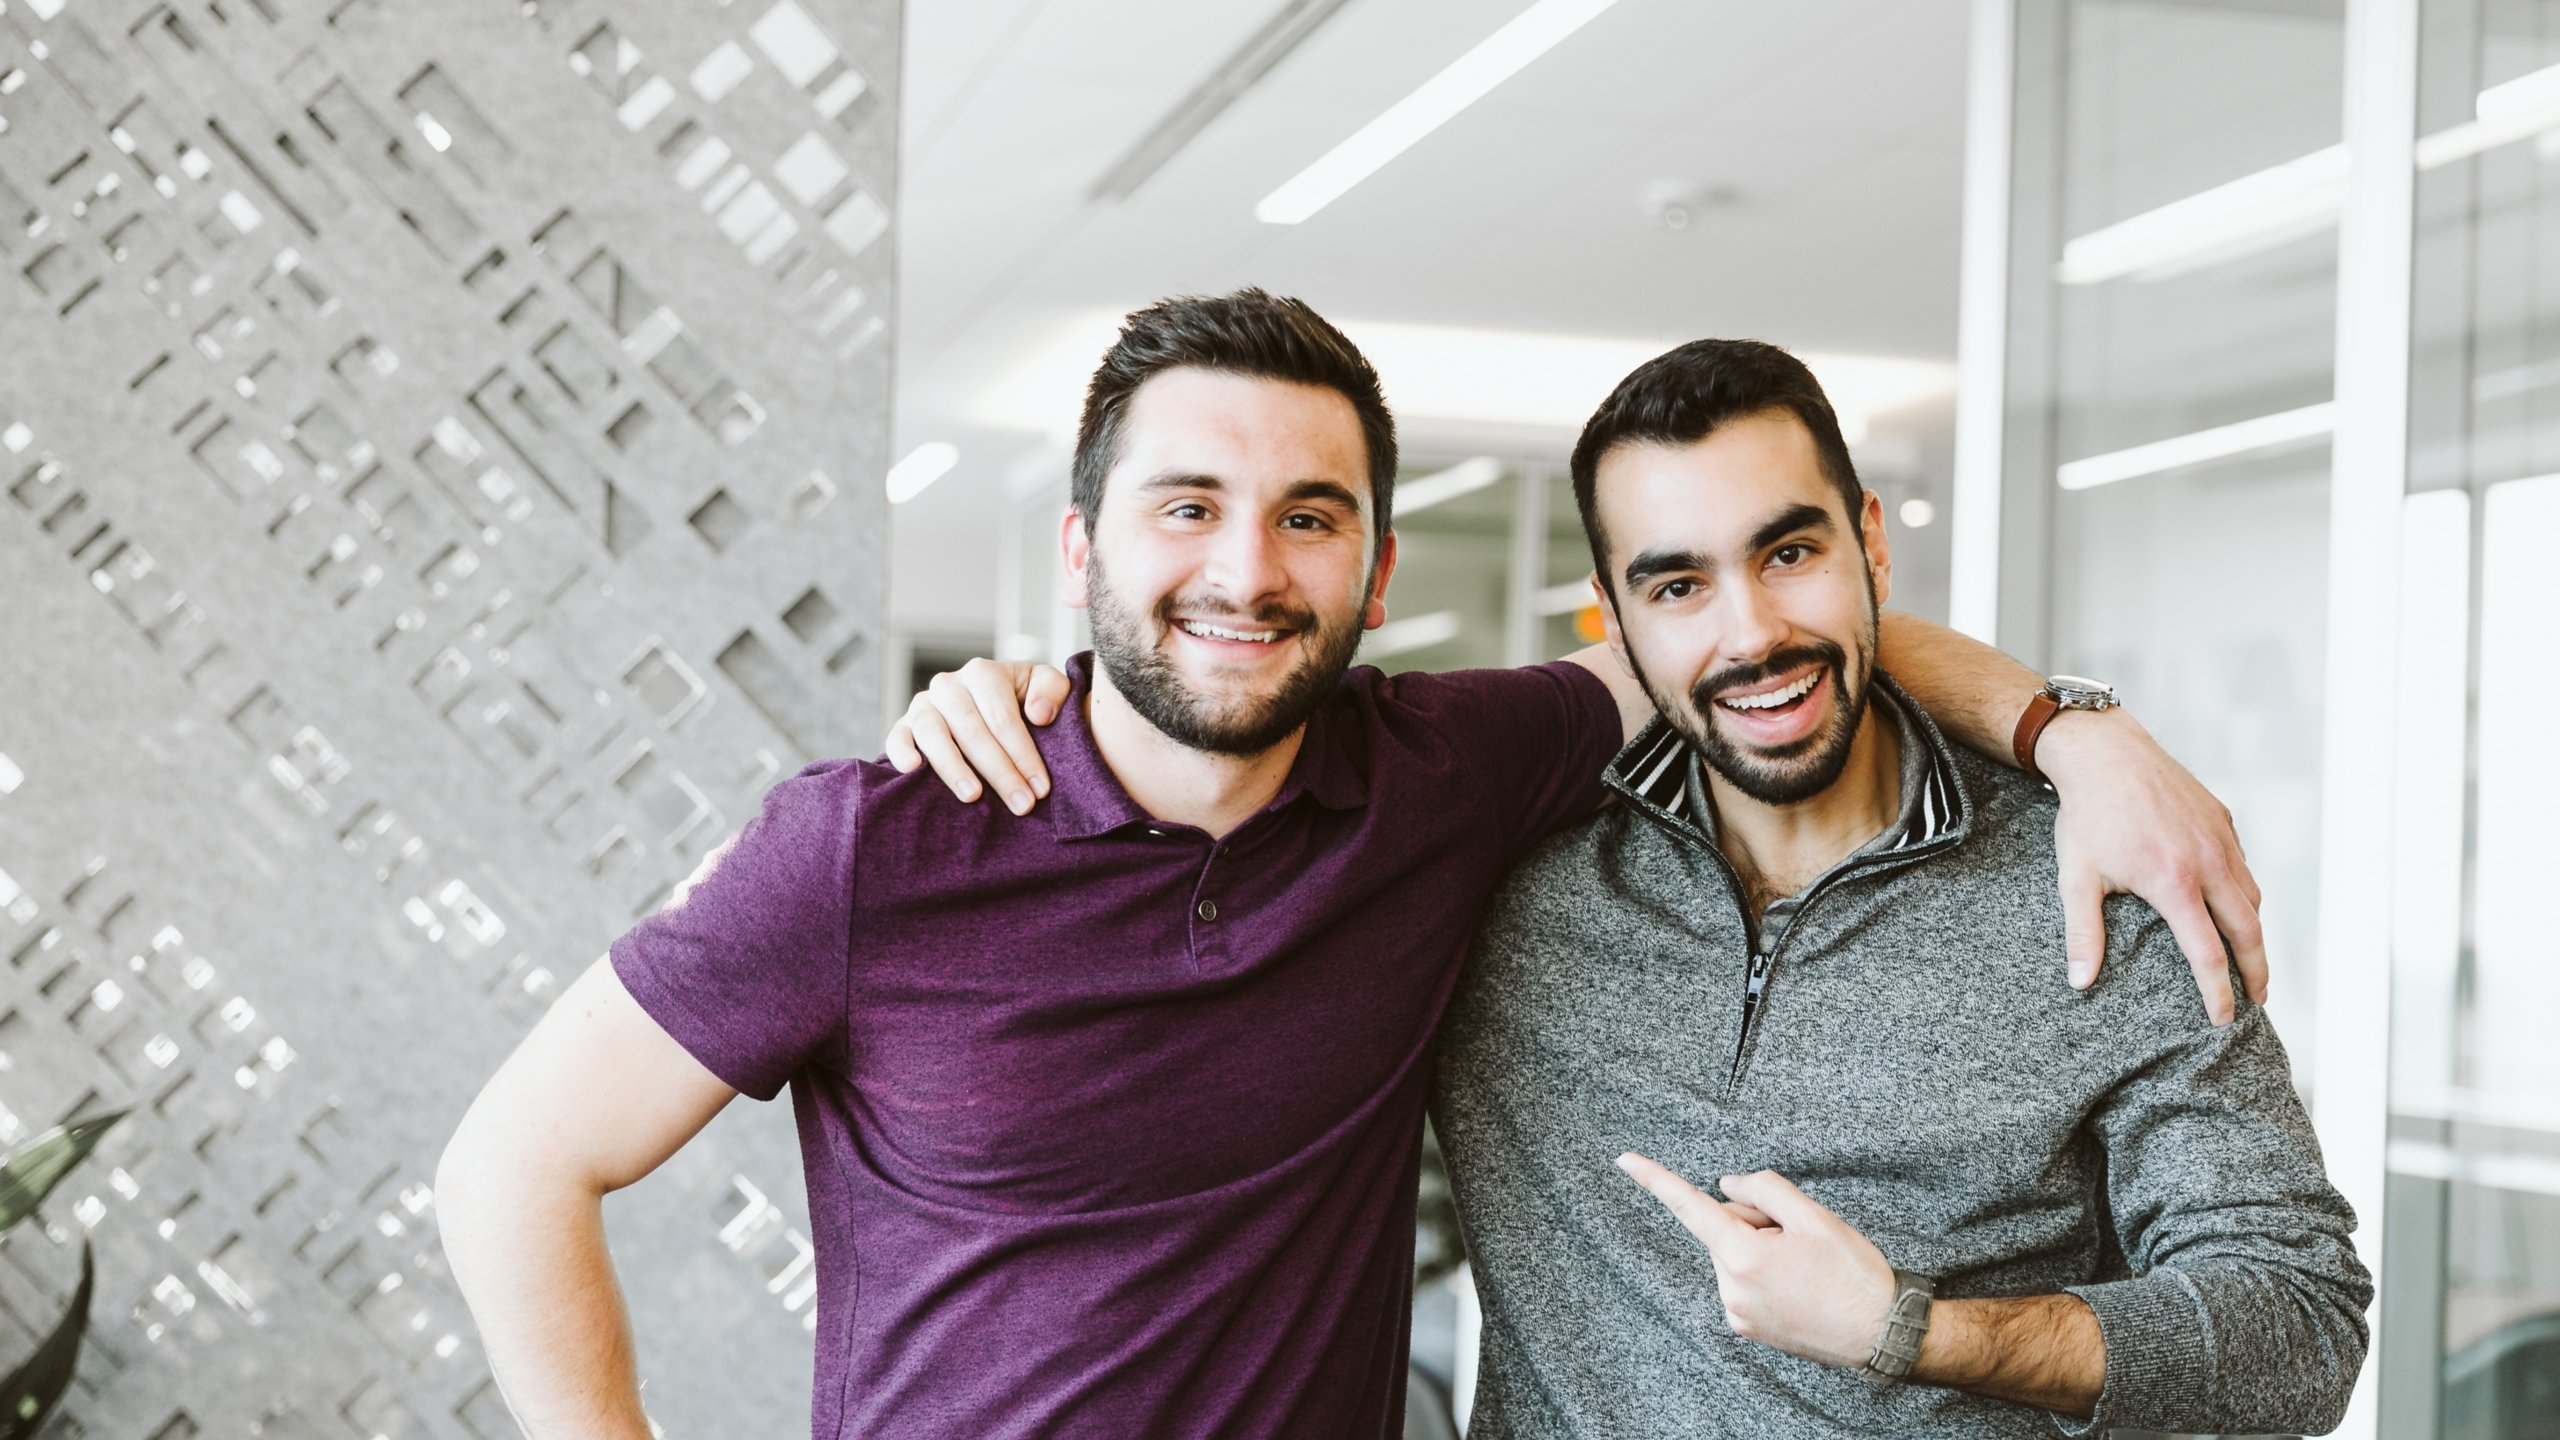 Two young men coworkers embrace casually in an office setting at Rockwell Automation